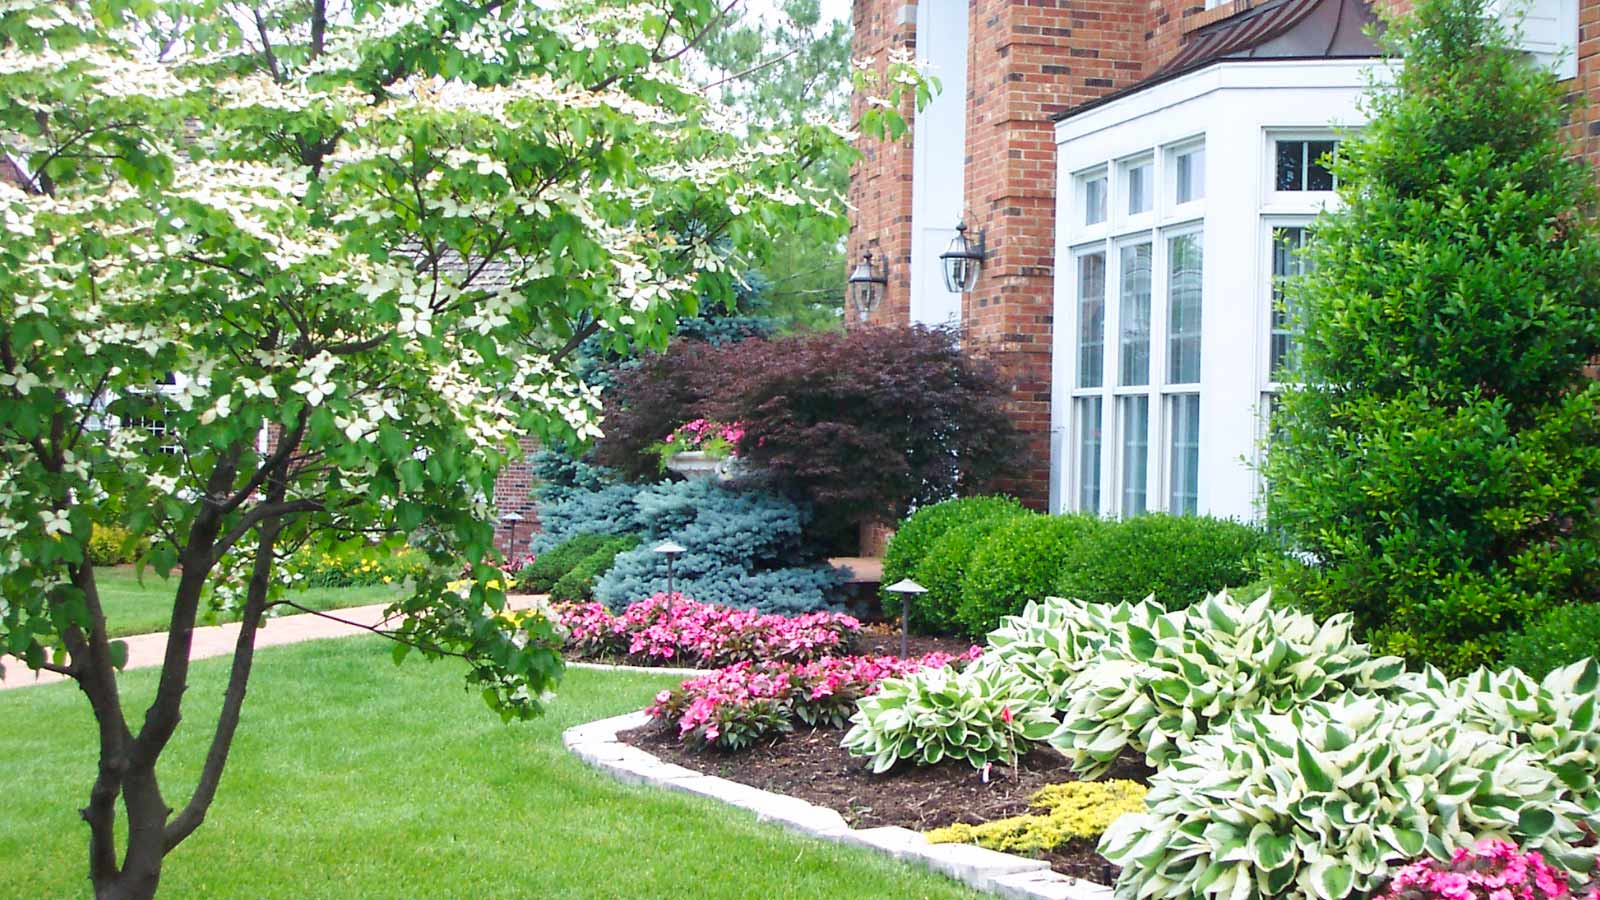 7 easy steps to hire professional landscaping services for for Professional landscaping ideas